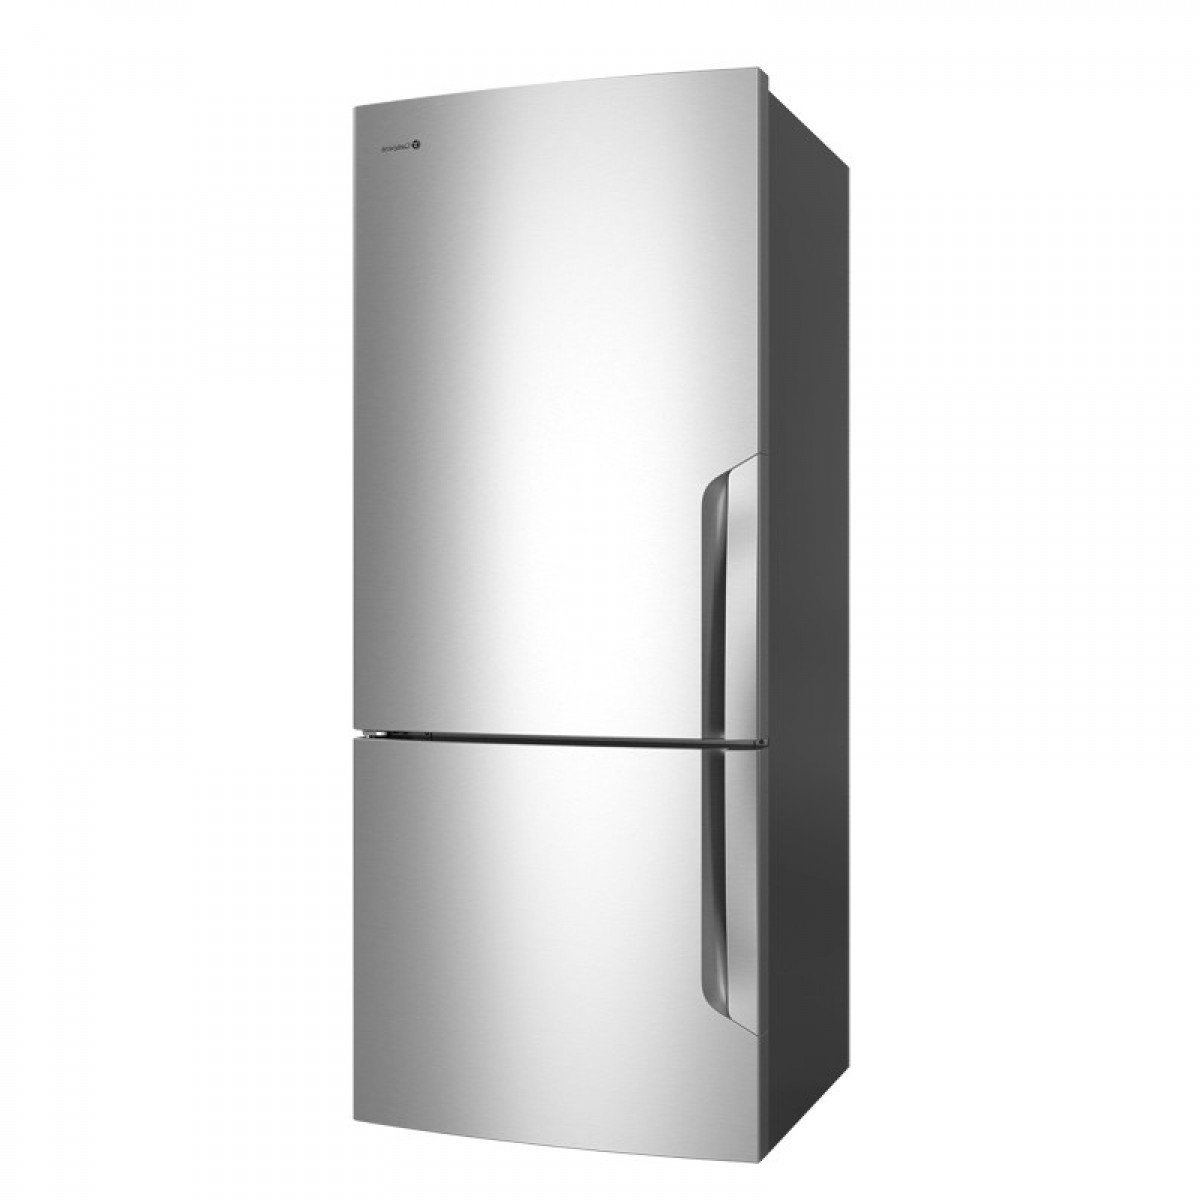 Best Westinghouse Wbe4500sa Refrigerator Prices In